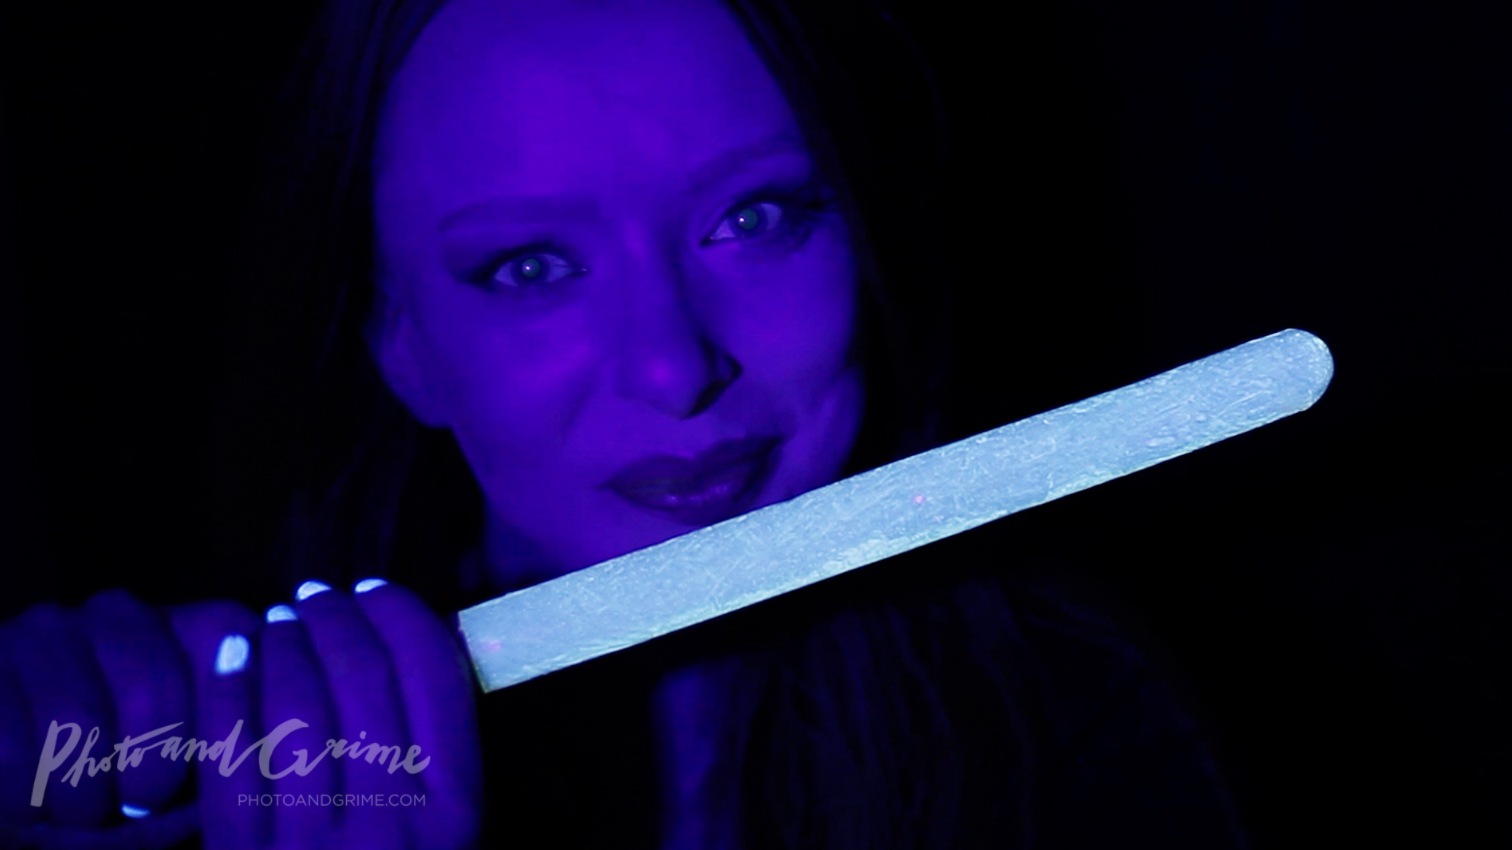 Edible blue UV Glow in the Dark Star Wars lightsaber made with quinine (Tonic).